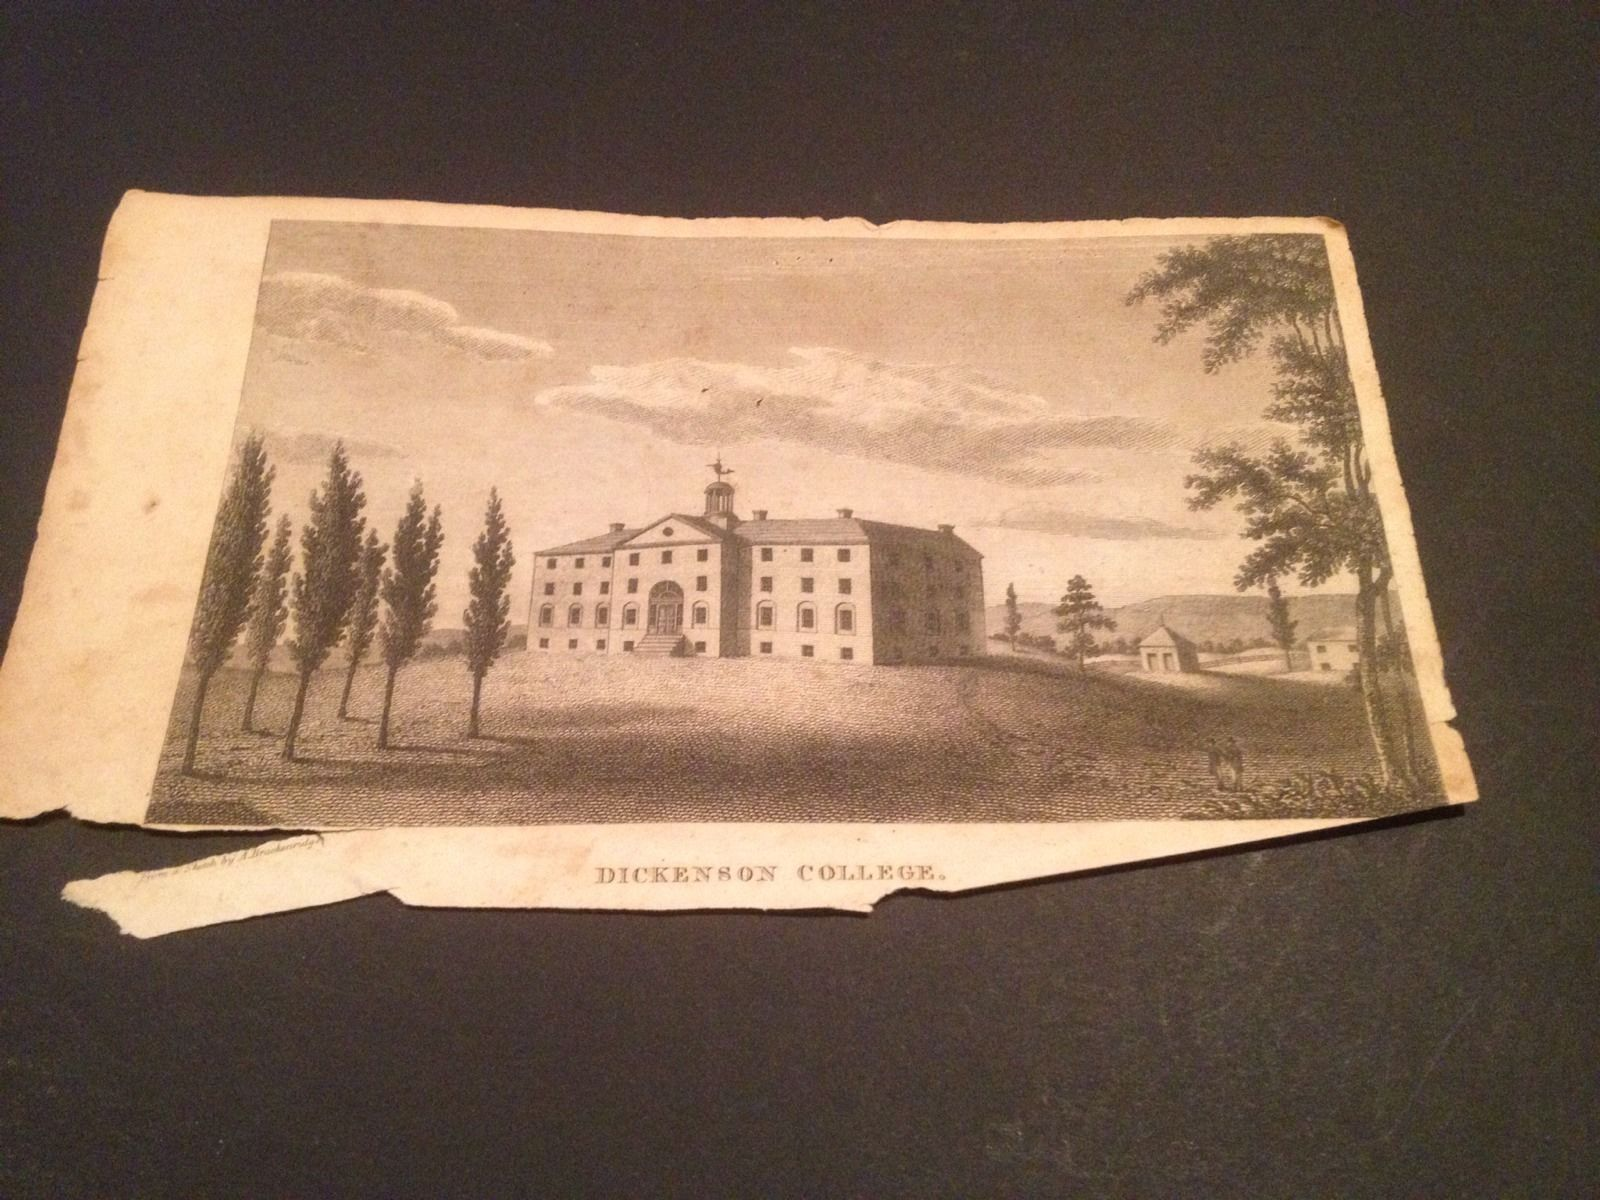 Vintage 1800's Antique Print Engraving Dickenson College